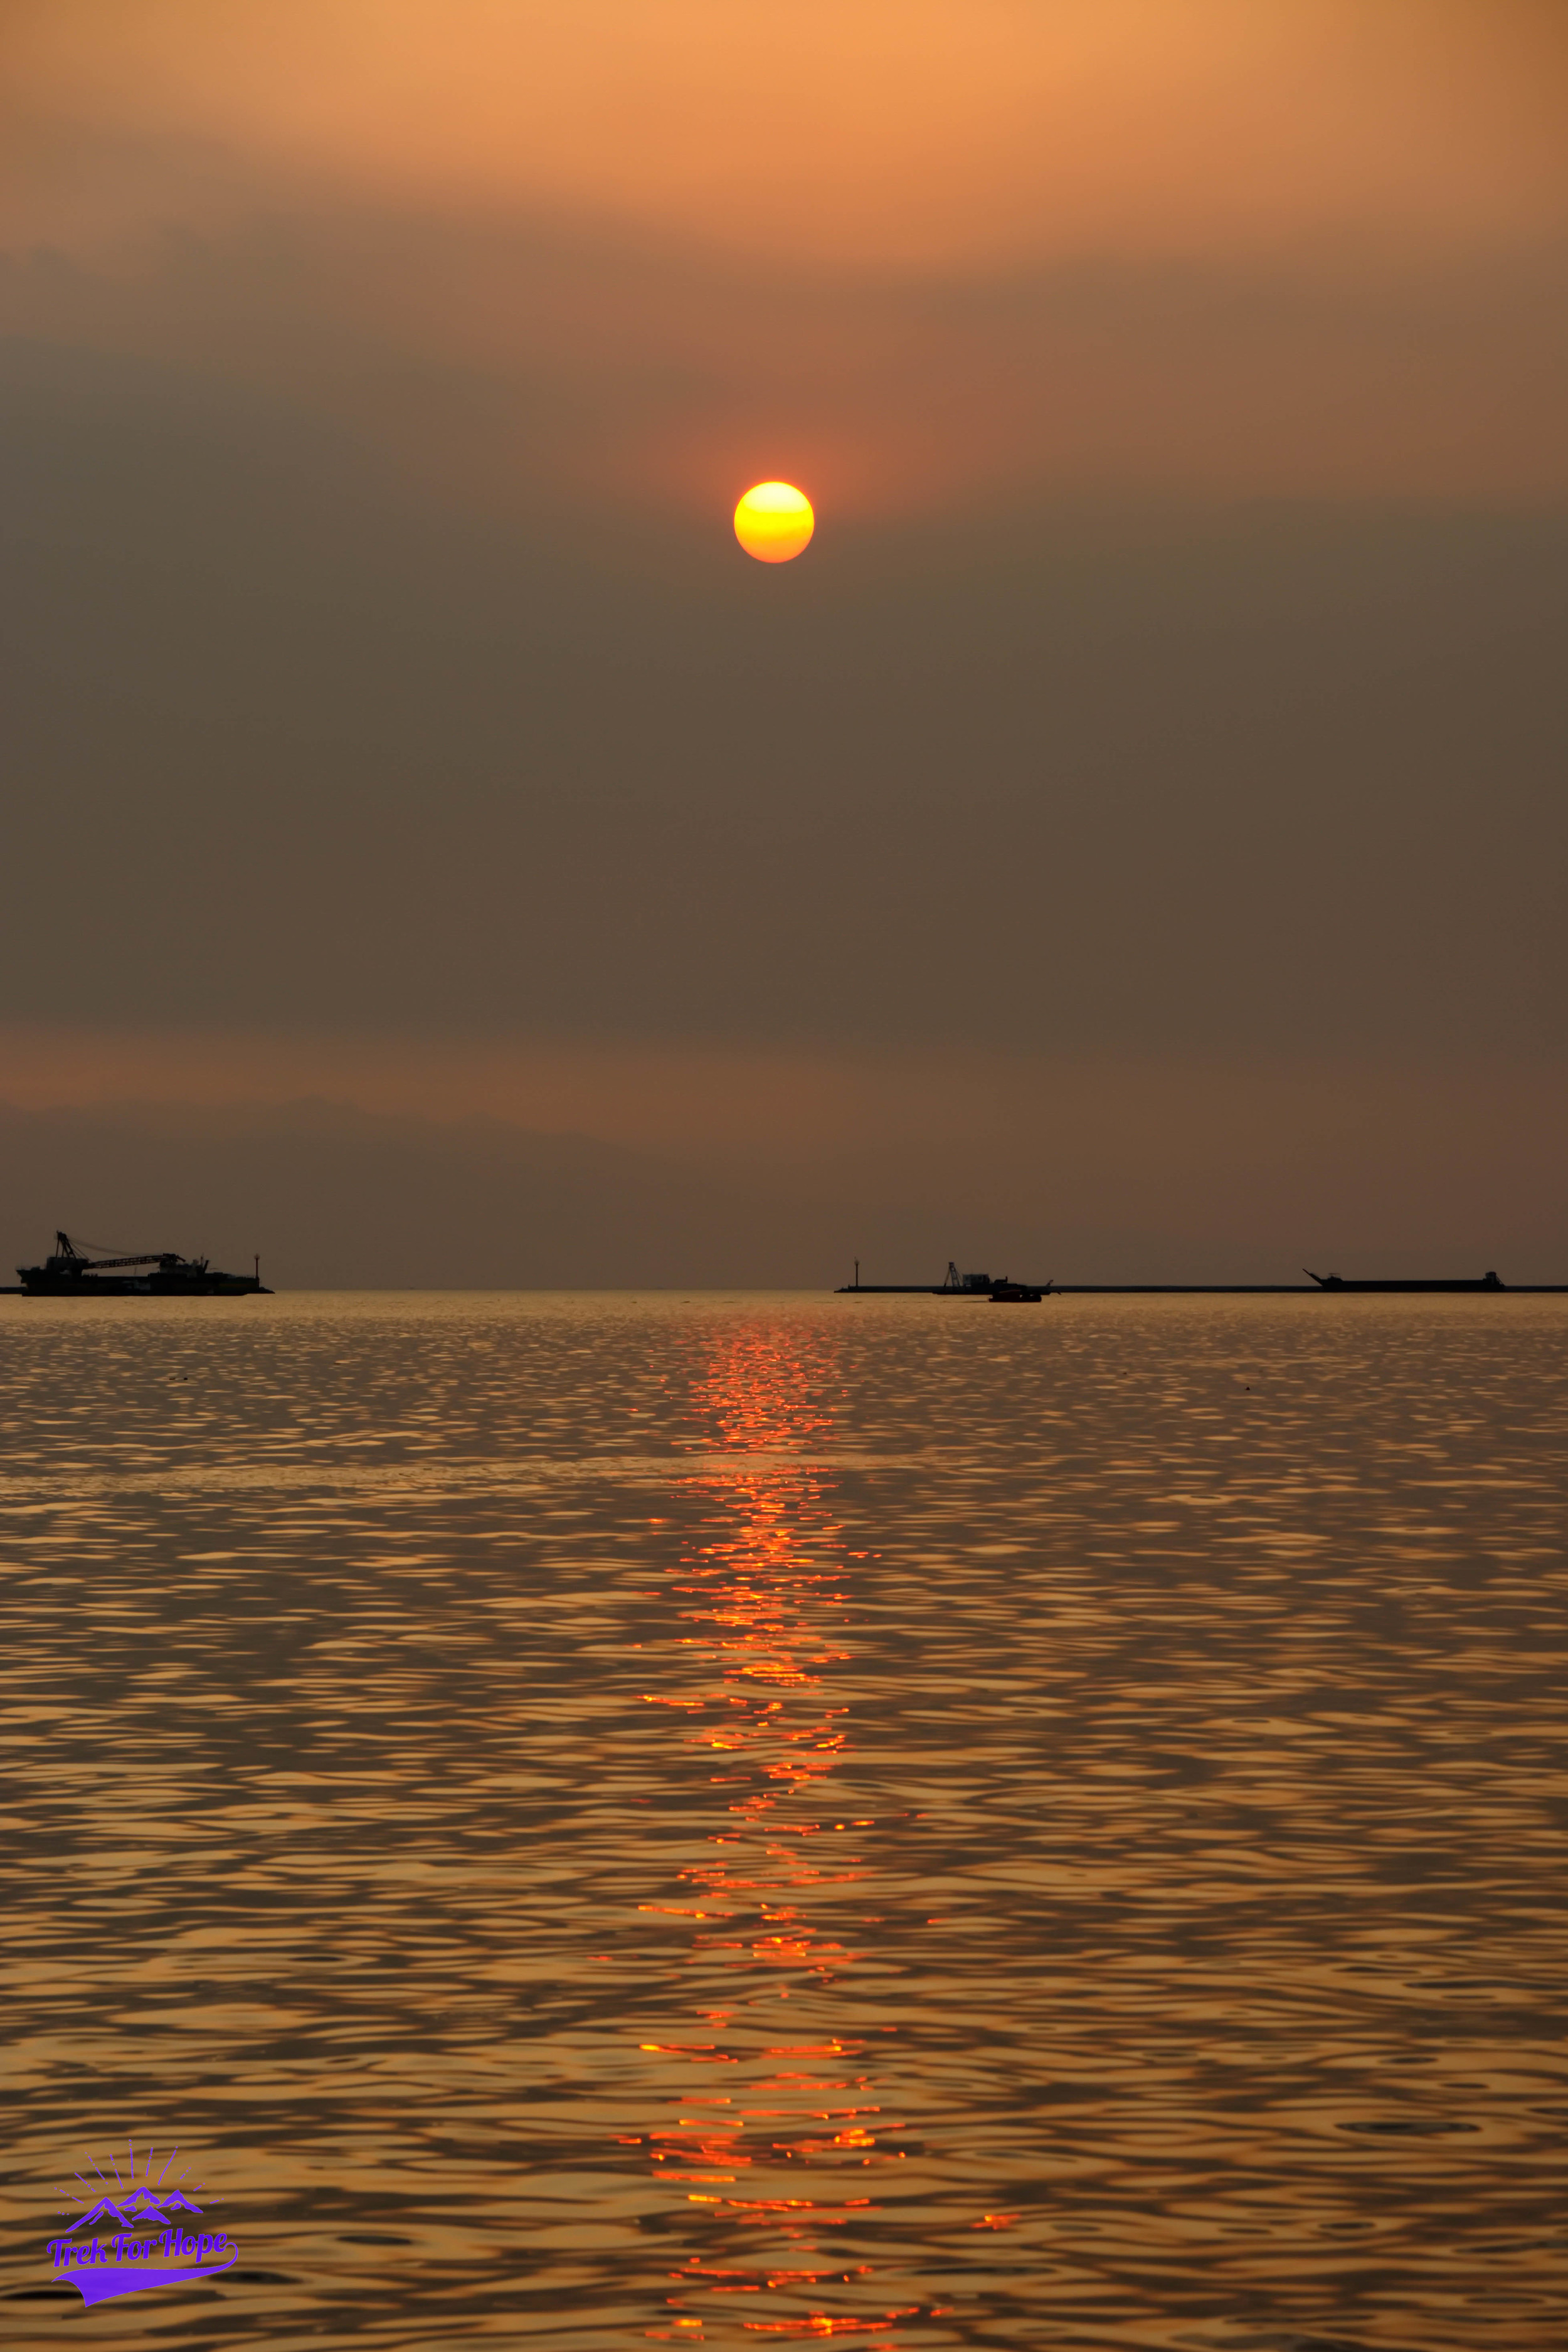 Sunset. Manila Bay. Beautiful place. But with trash. Our trash. Litter everywhere...